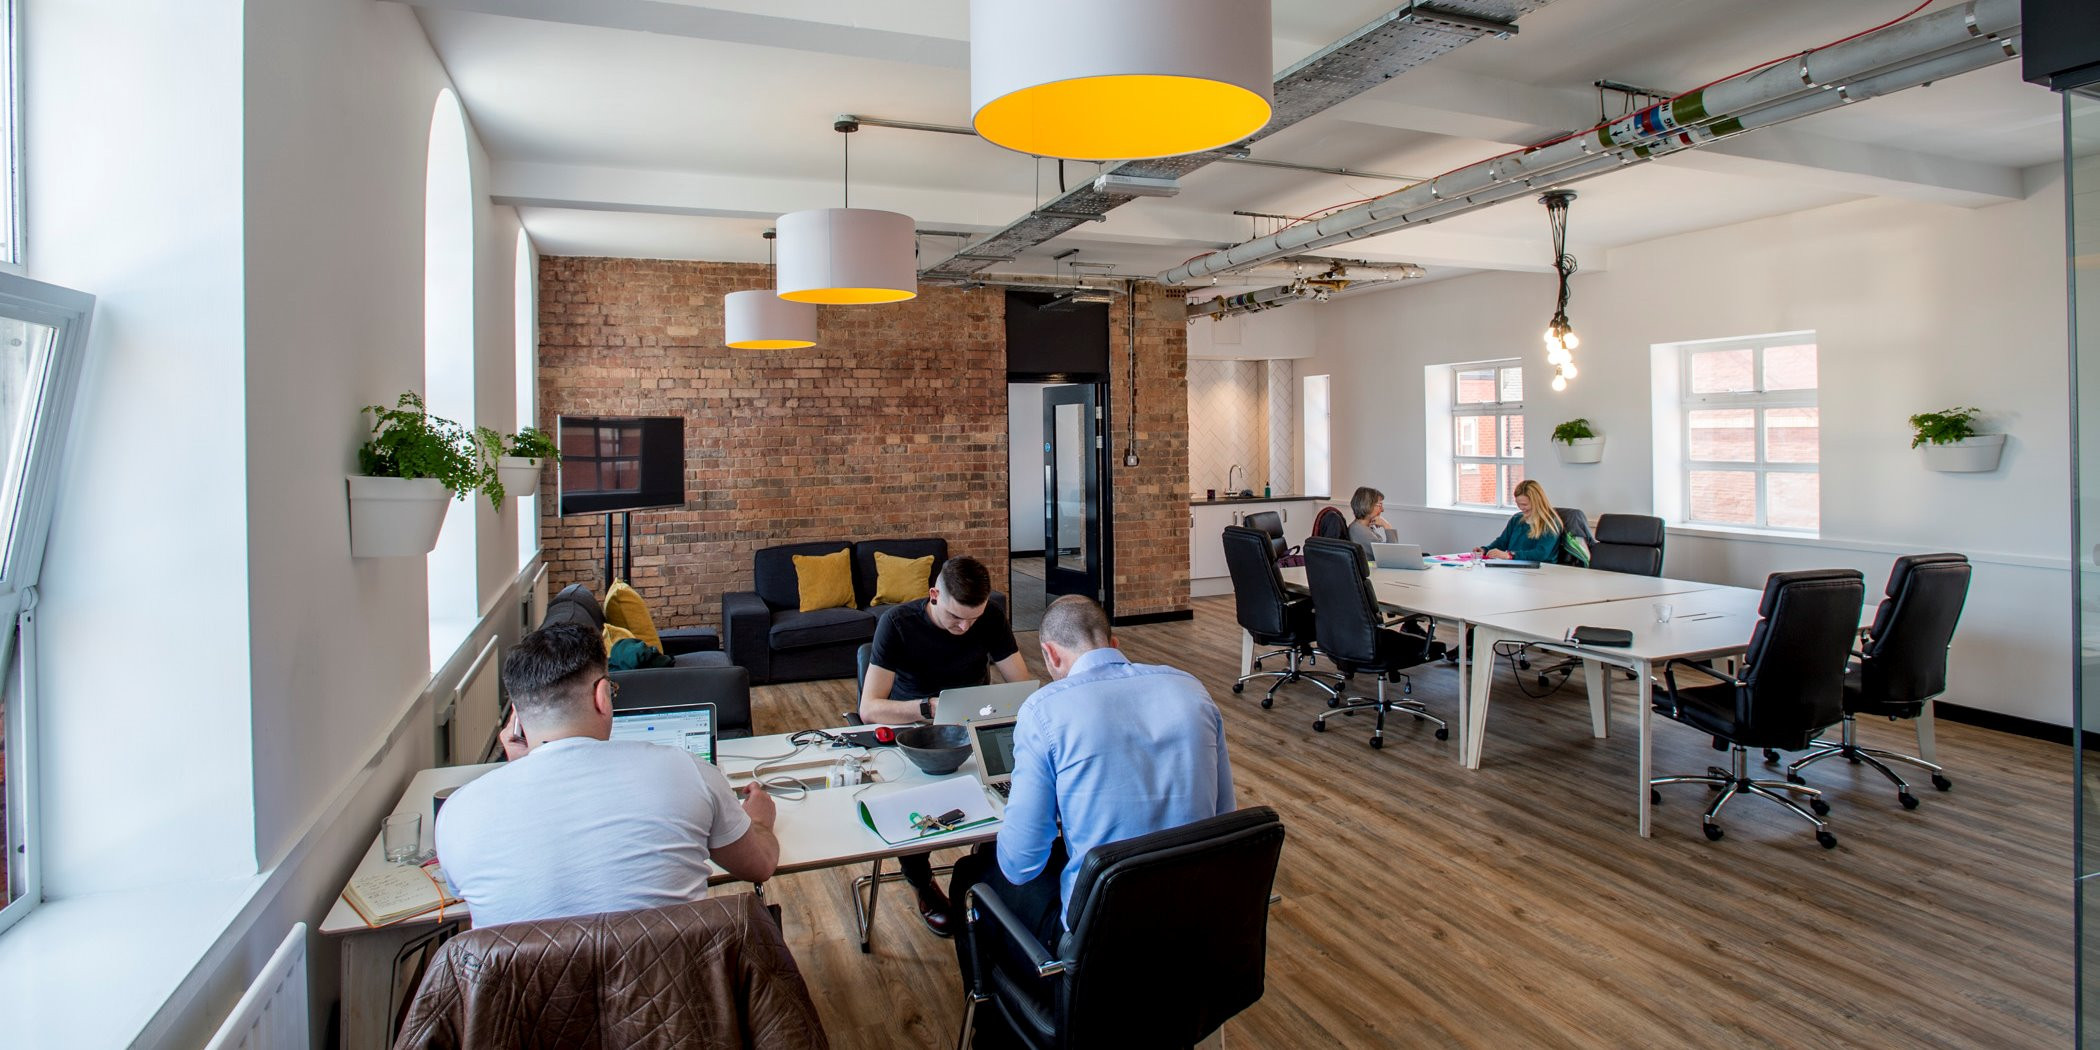 Building a Digital CoWorking Community